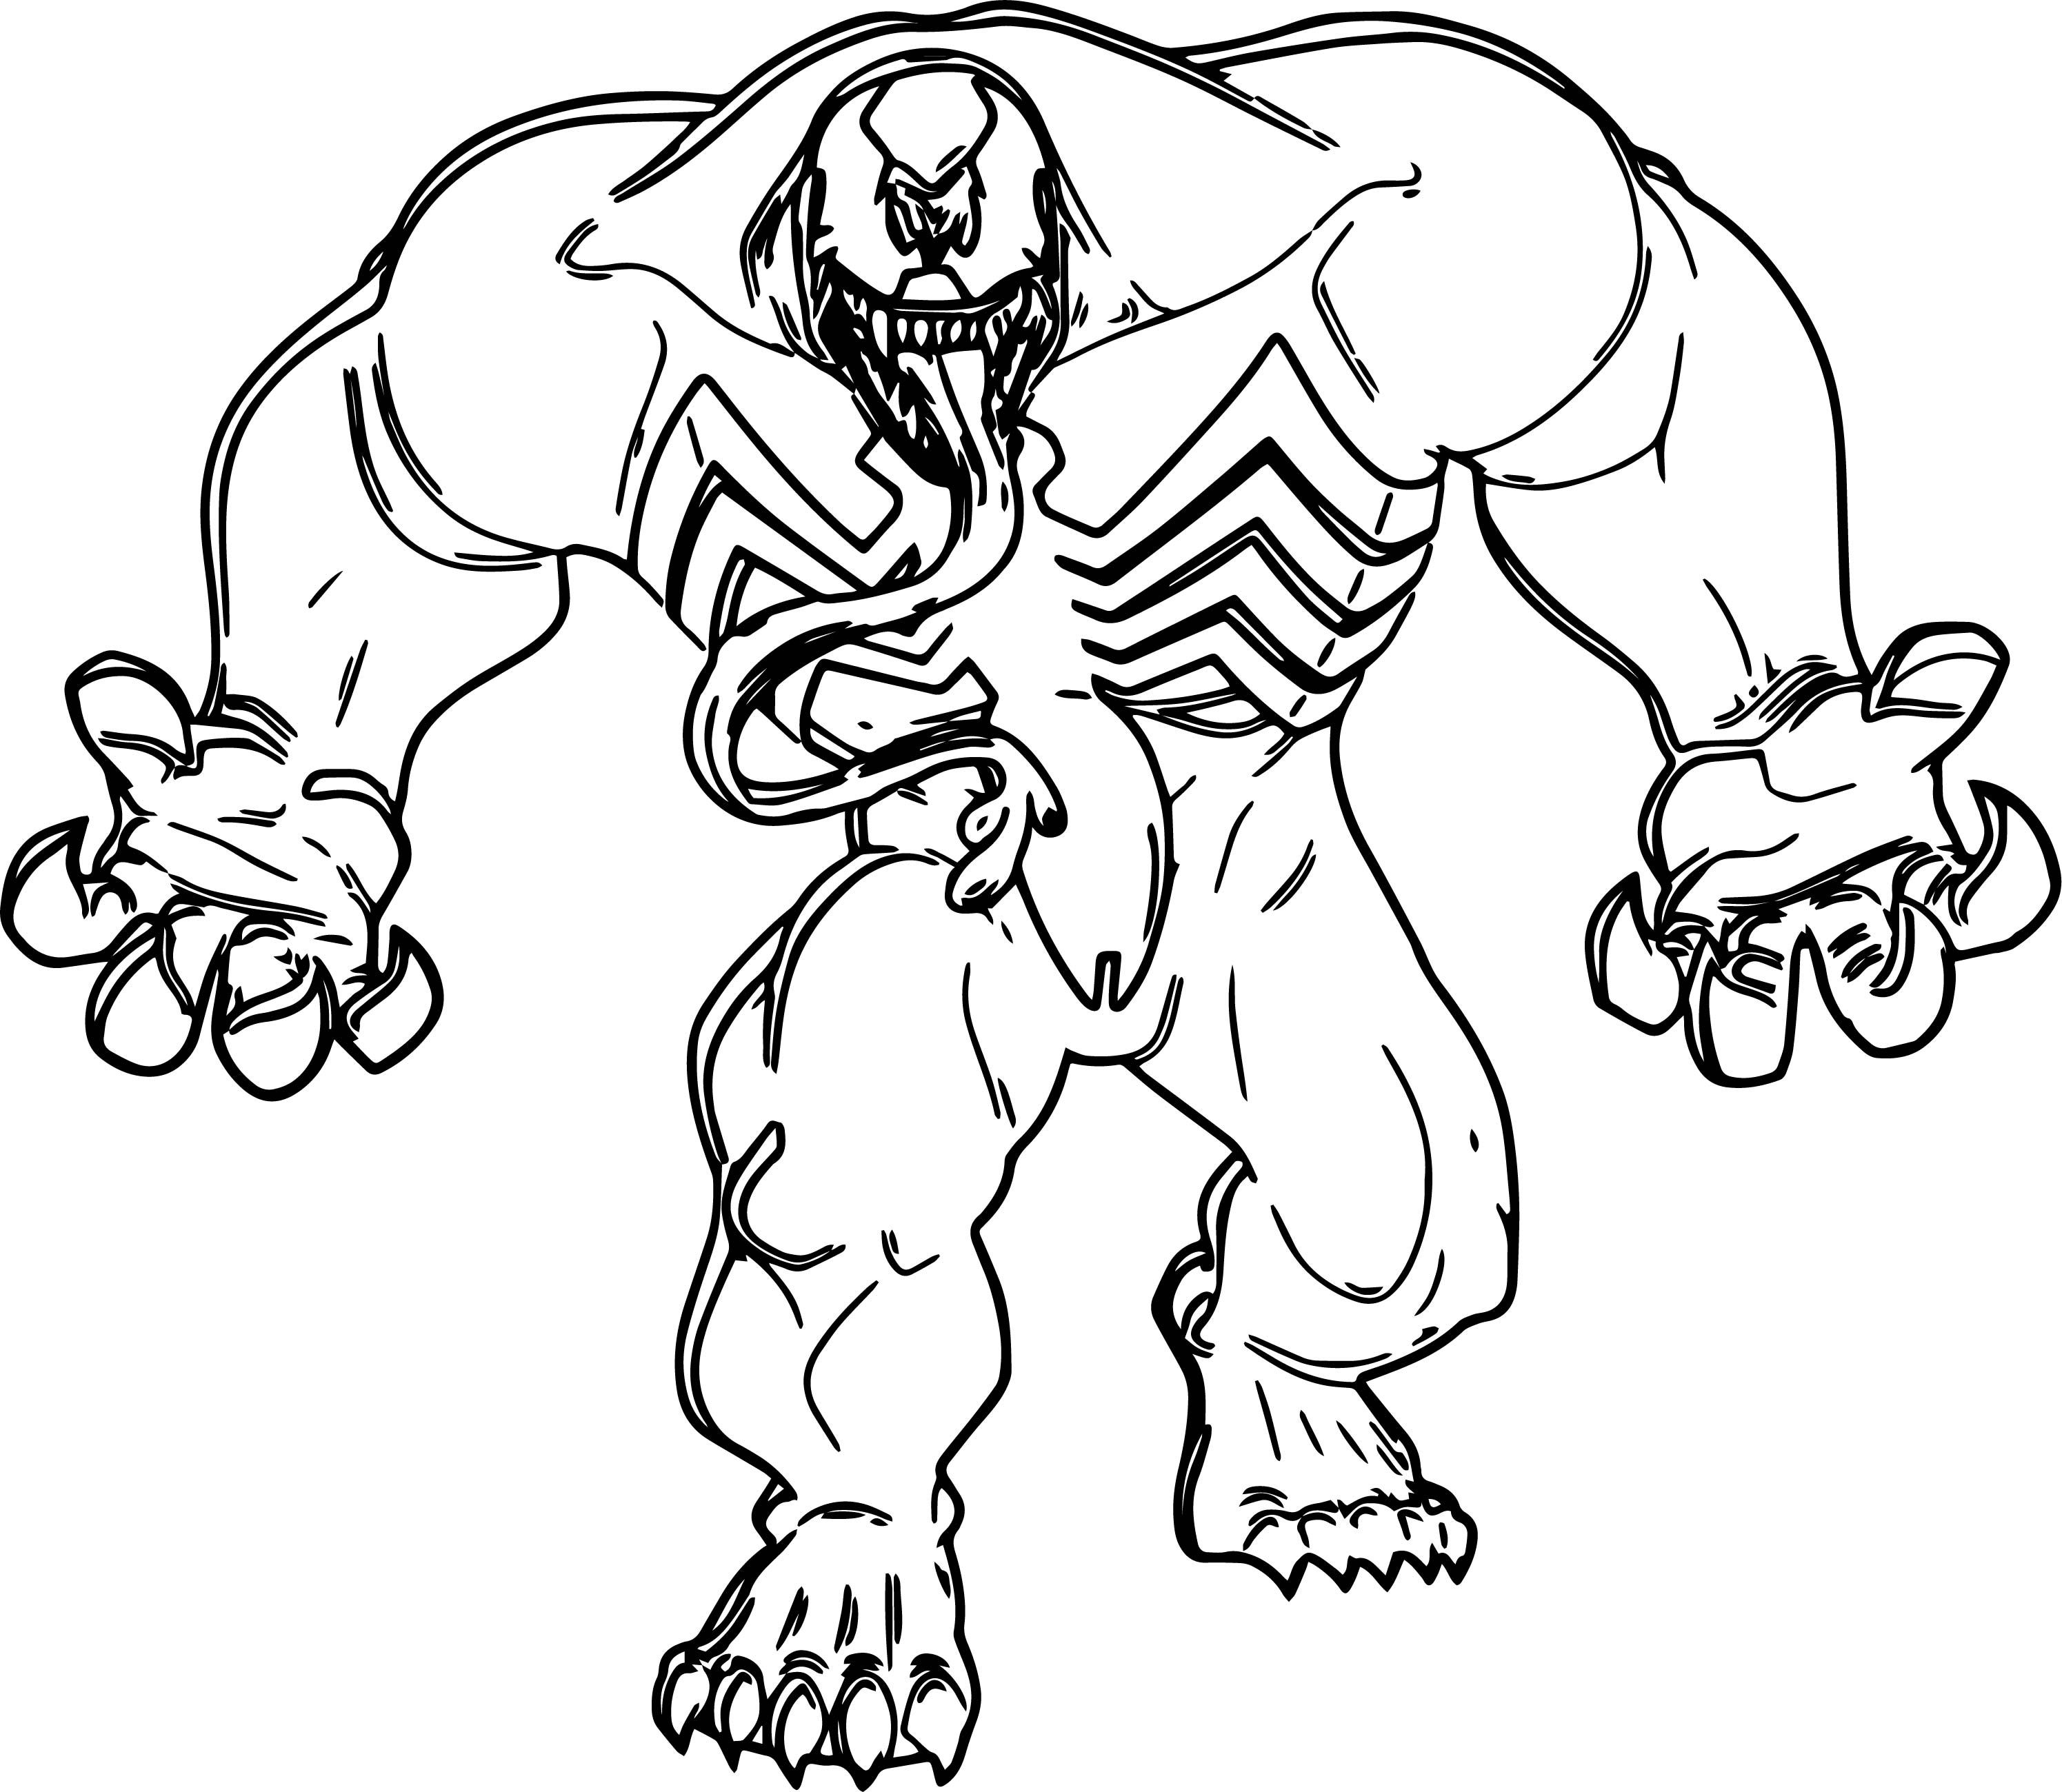 Cool Coming Venom Marvel Coloring Page Superhero Coloring Pages